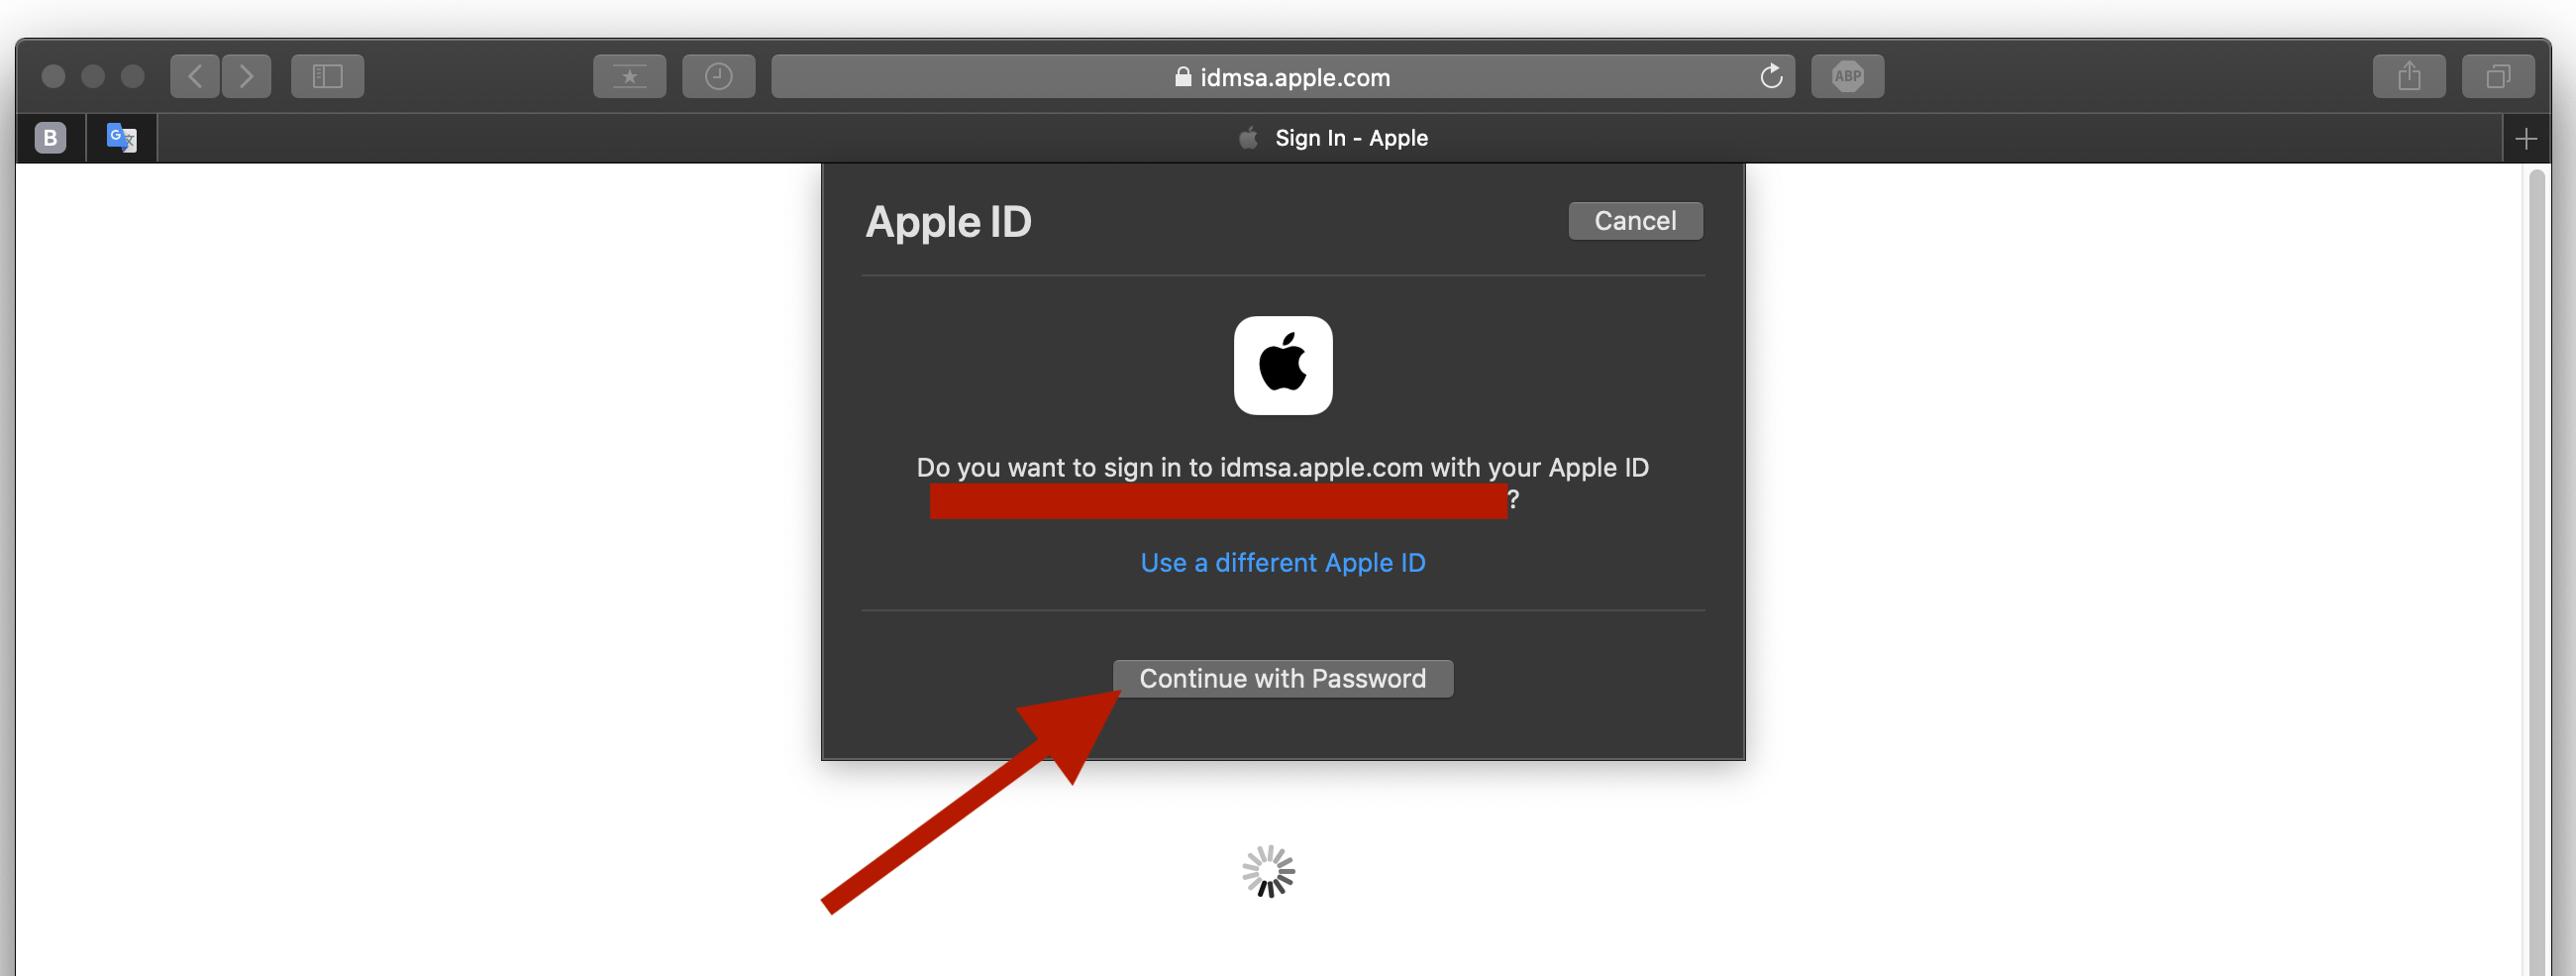 How to download from developer.apple.com